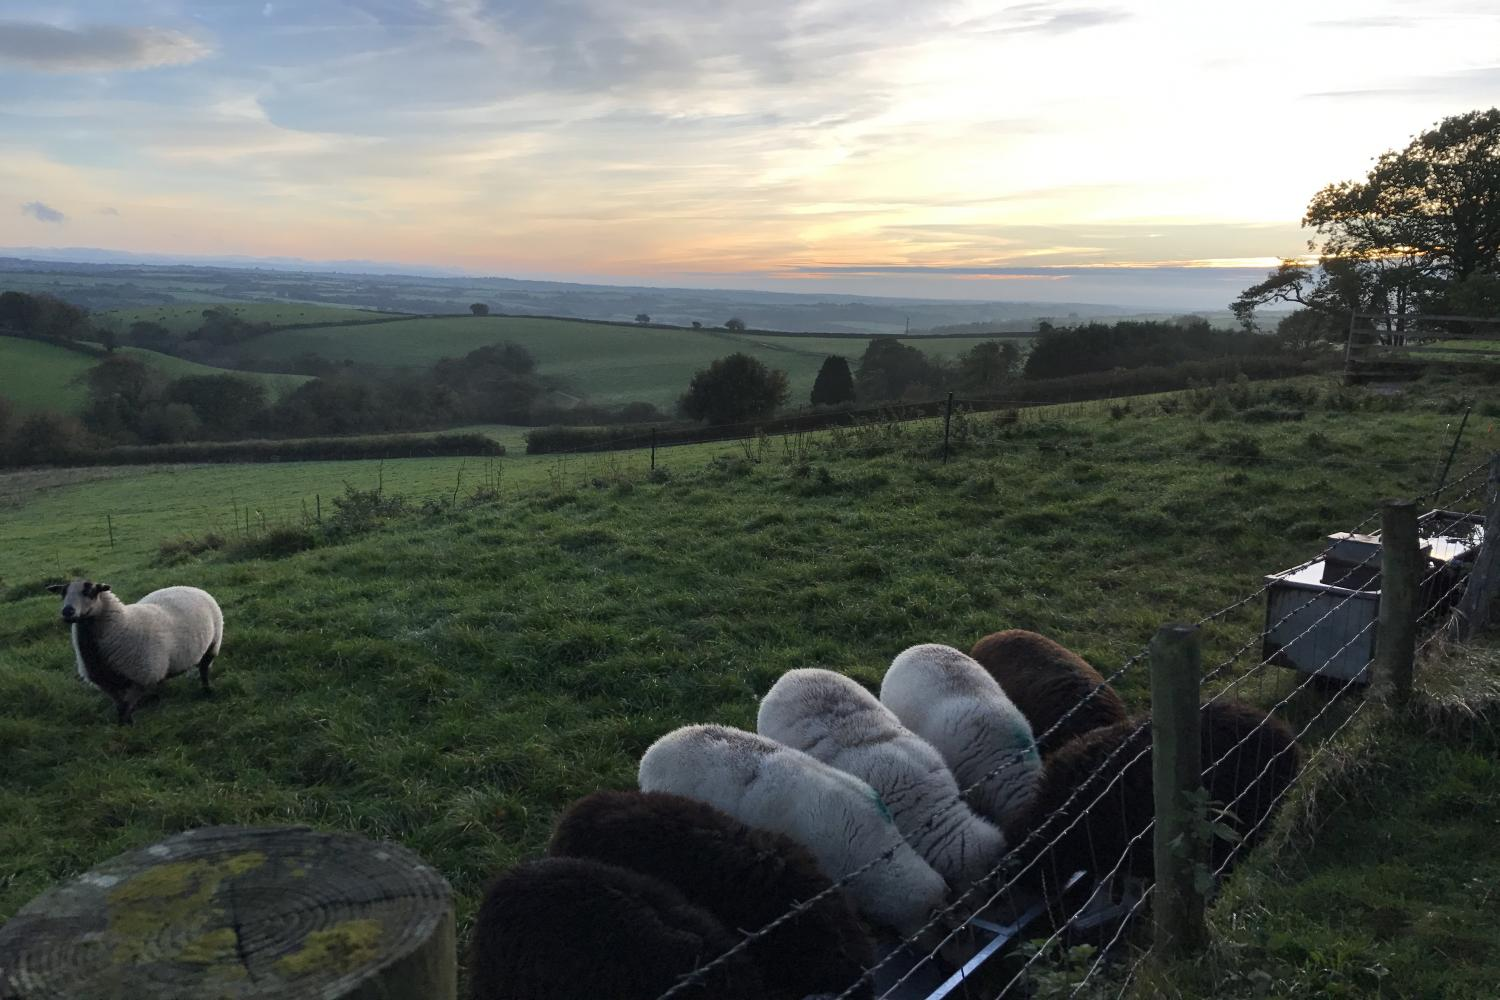 The sheep enjoying some food at sunset.